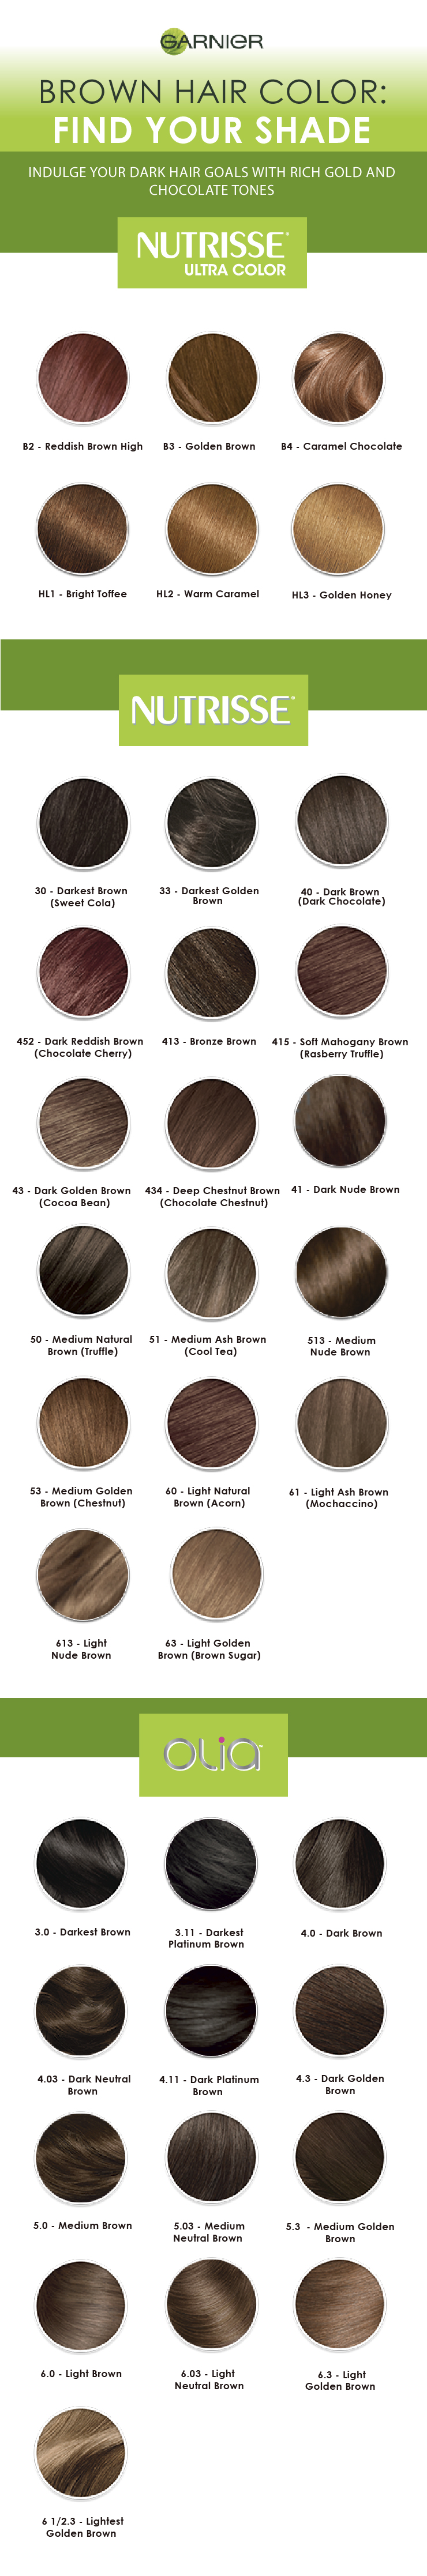 Cover Grays Touch Up Roots Or Indulge Your Dark Hair Goals With Our